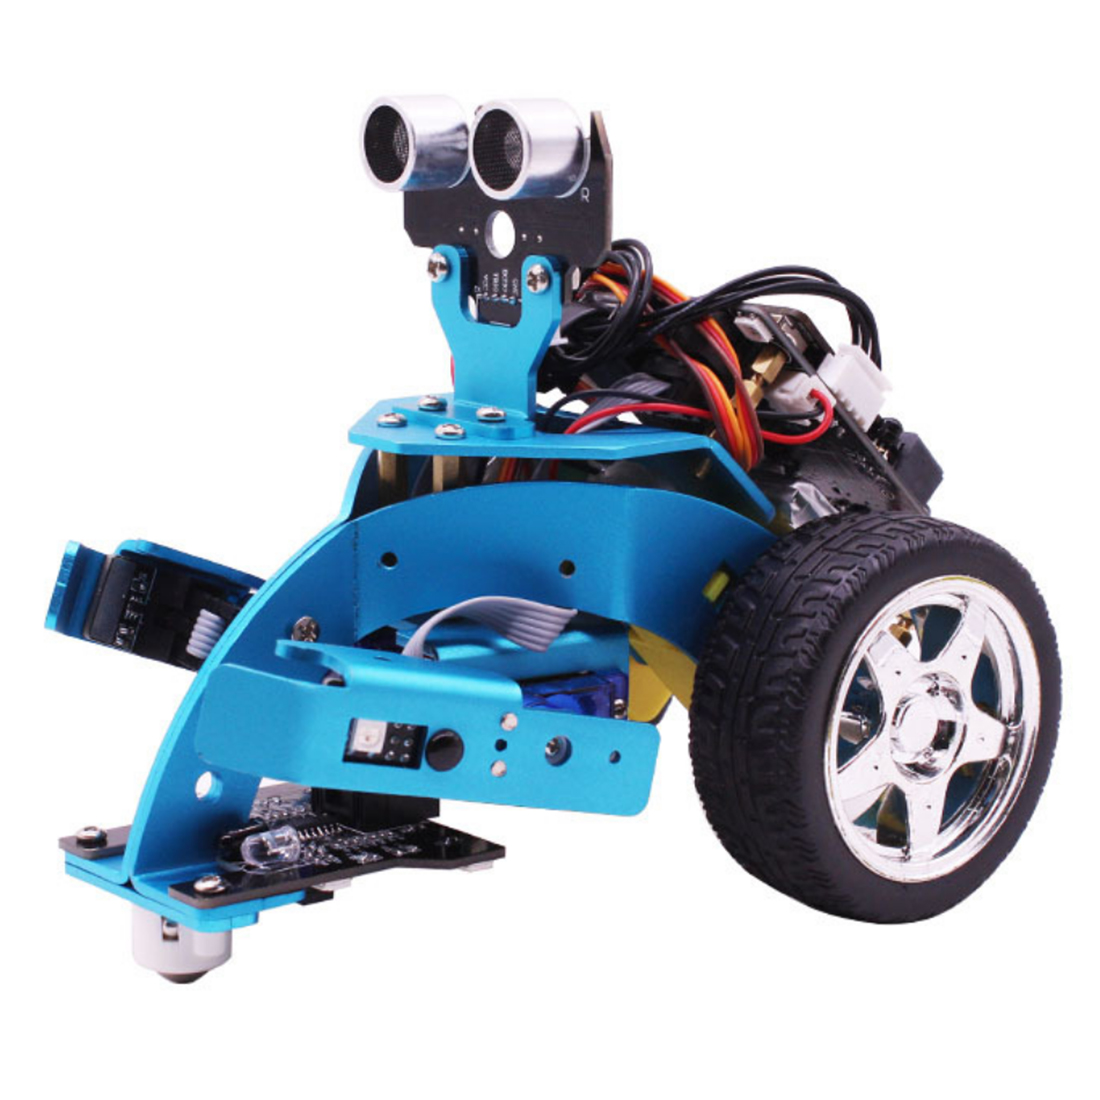 New Hot Toys Kit 3-In-1 Graphical Programmable Robot Car With Bluetooth IR Tracking Module Aluminum Alloy Steam Robot Car Toy